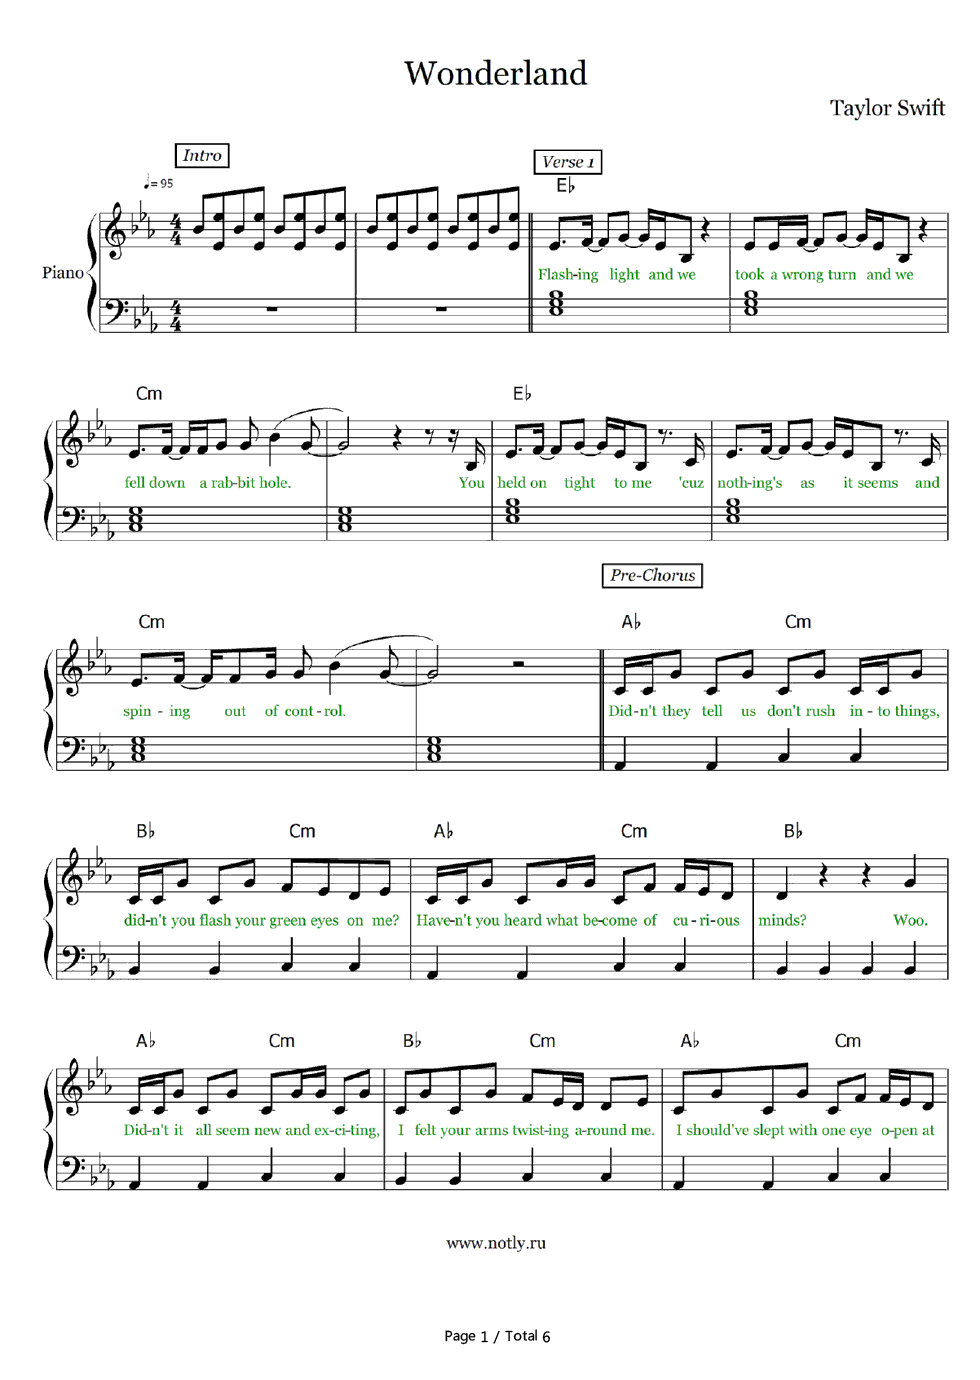 Wonderland-Taylor Swift Stave Preview 1- Free Piano Sheet Music u0026 Piano Chords